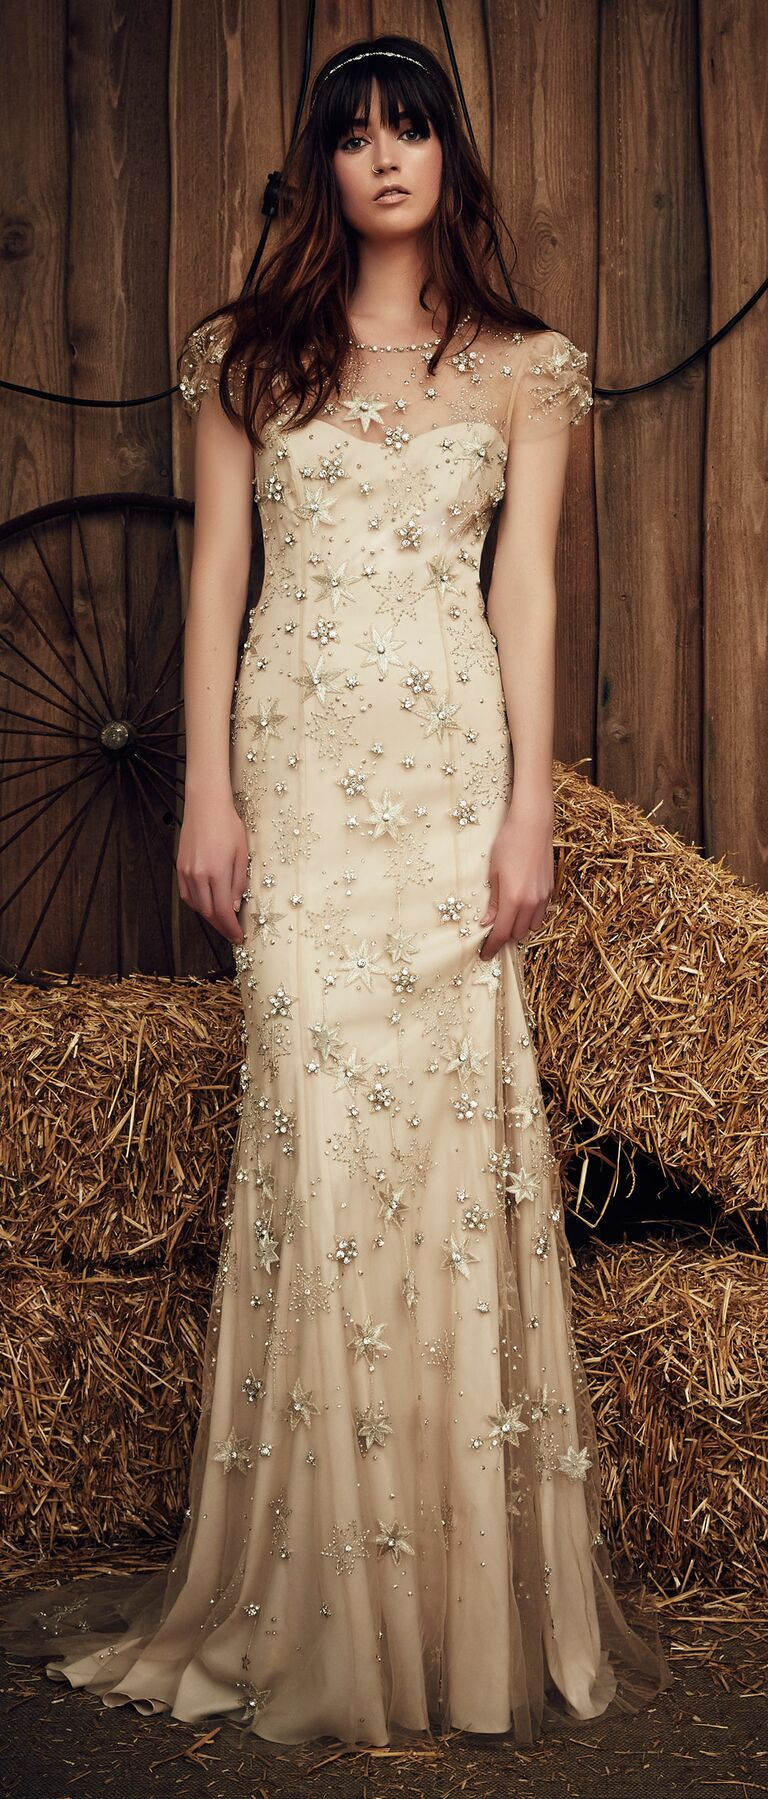 2019 year for women- Packham jenny gorgeous wedding dresses collection